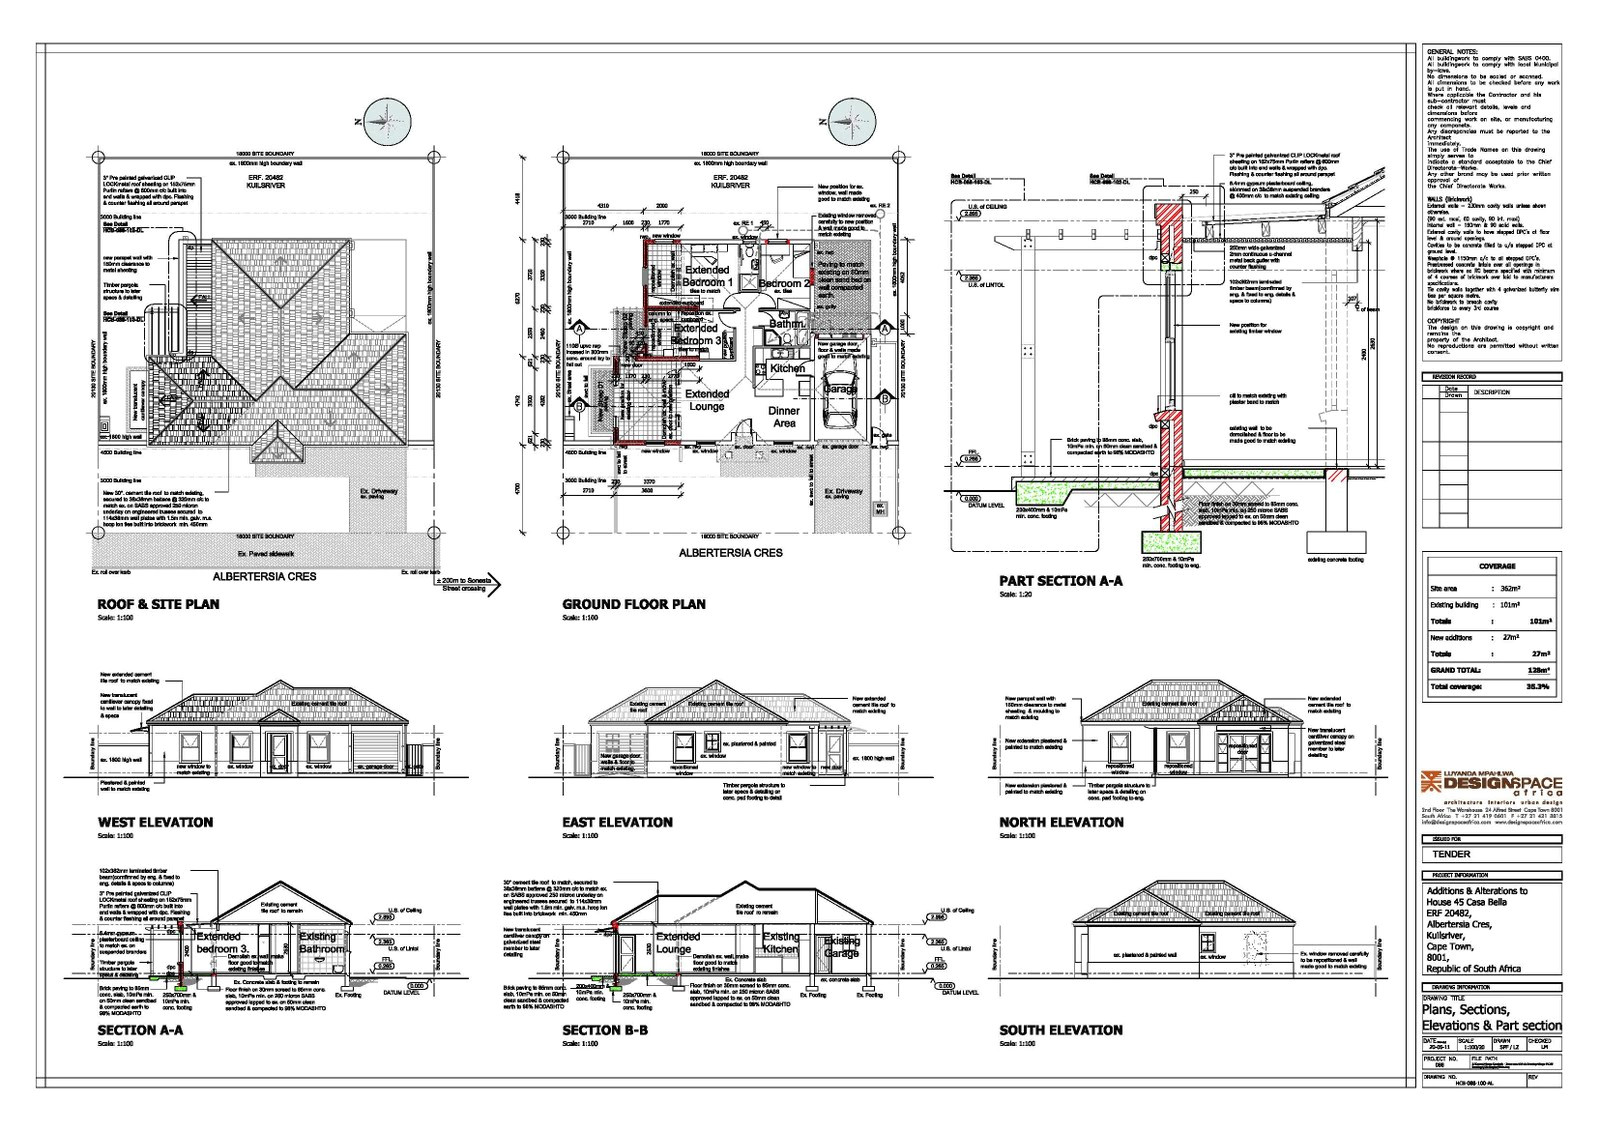 bay window framing plans construction details